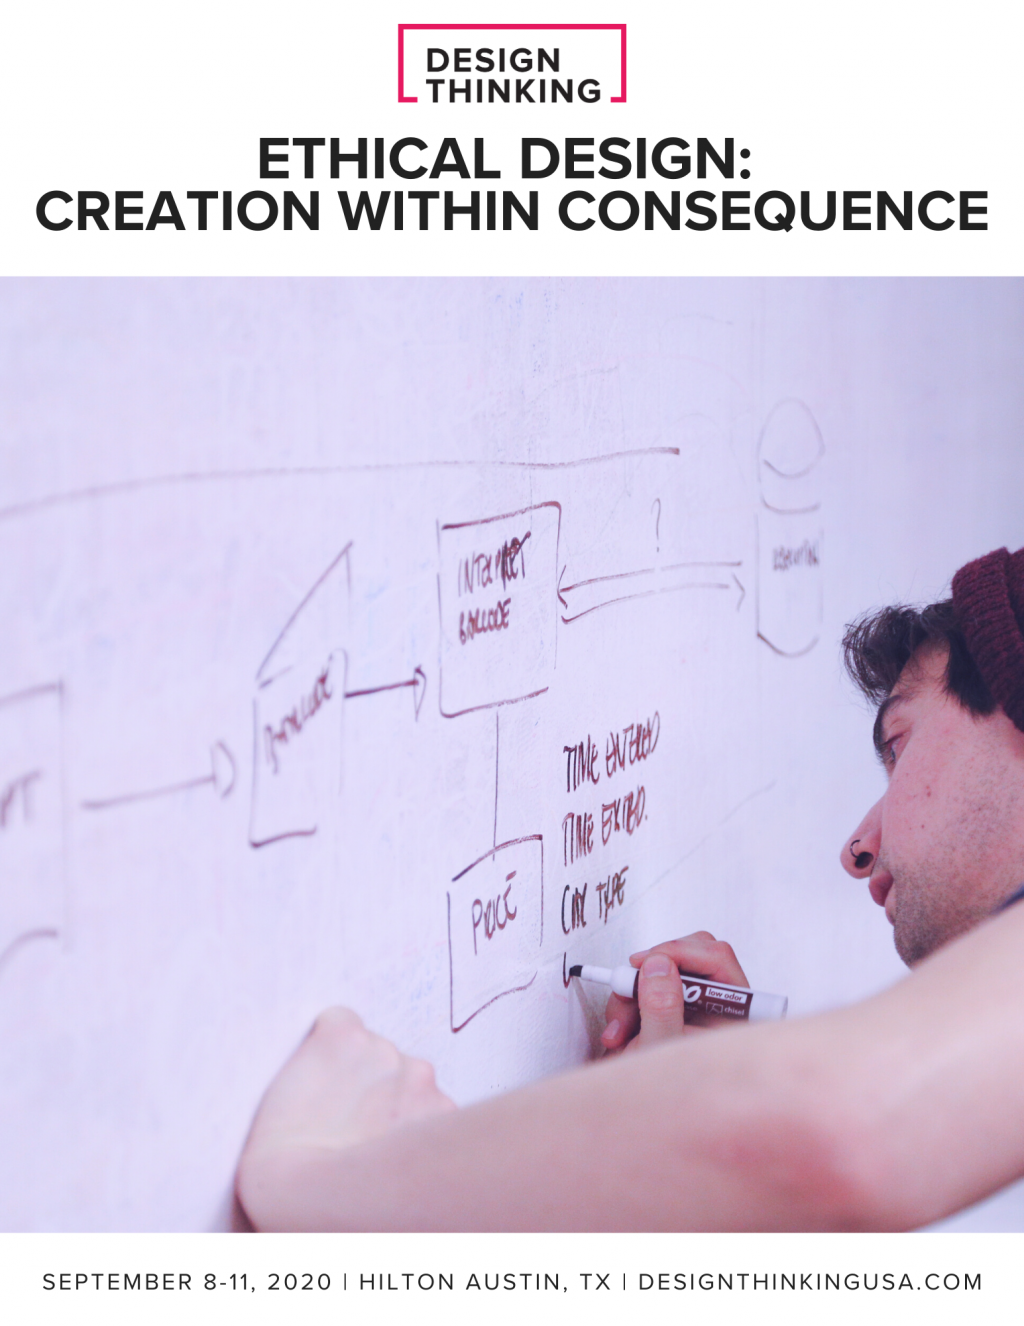 Design Thinking 301 - Ethical Design: Creation with Consequence